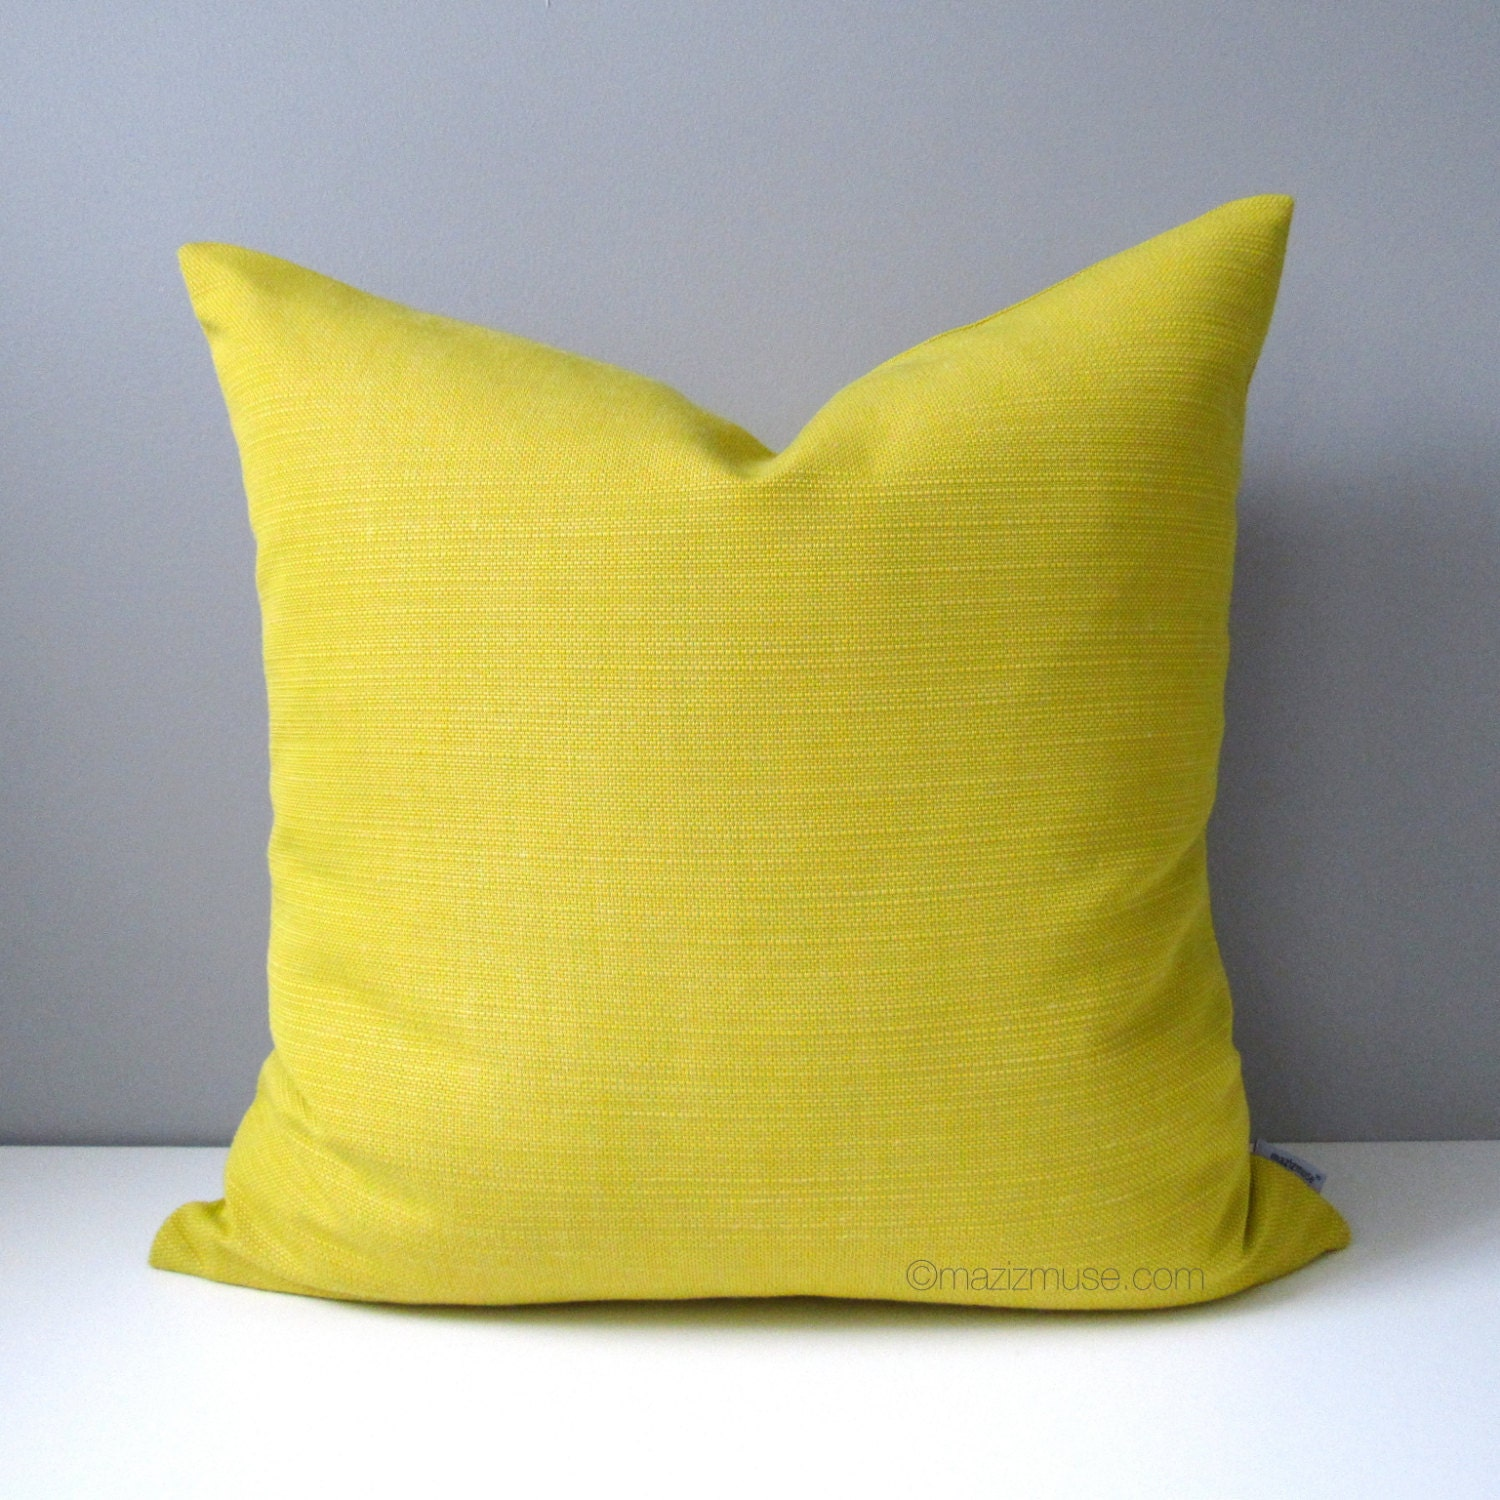 Throw Pillow Covers Yellow : Acid Yellow Pillow Cover Decorative Pillow Case Modern